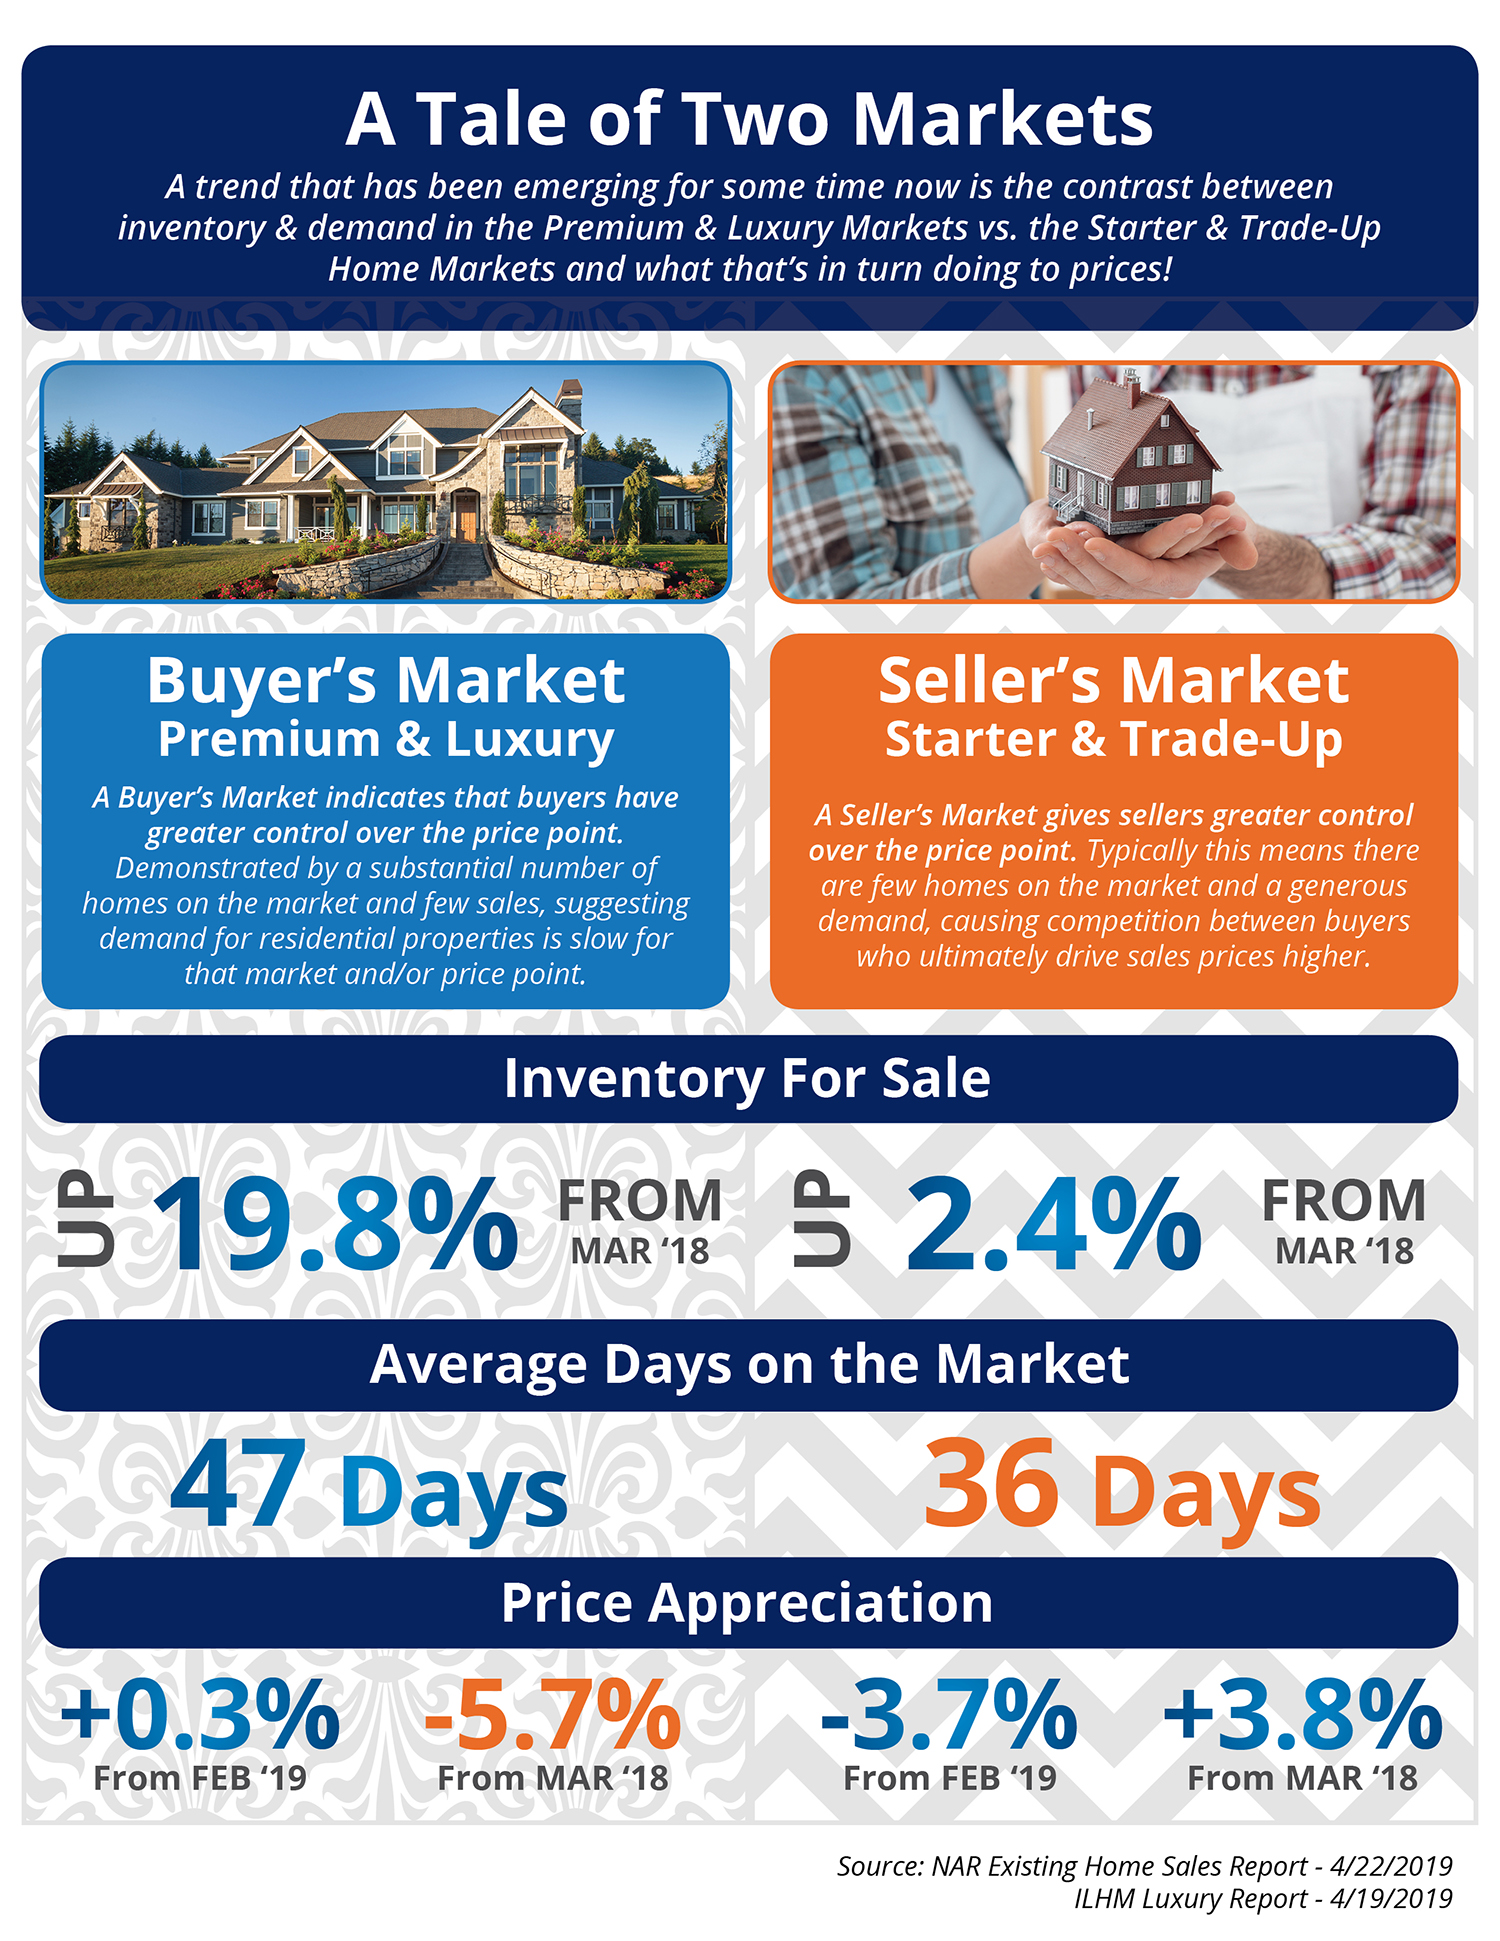 A Tale of Two Markets [INFOGRAPHIC] | MyKCM